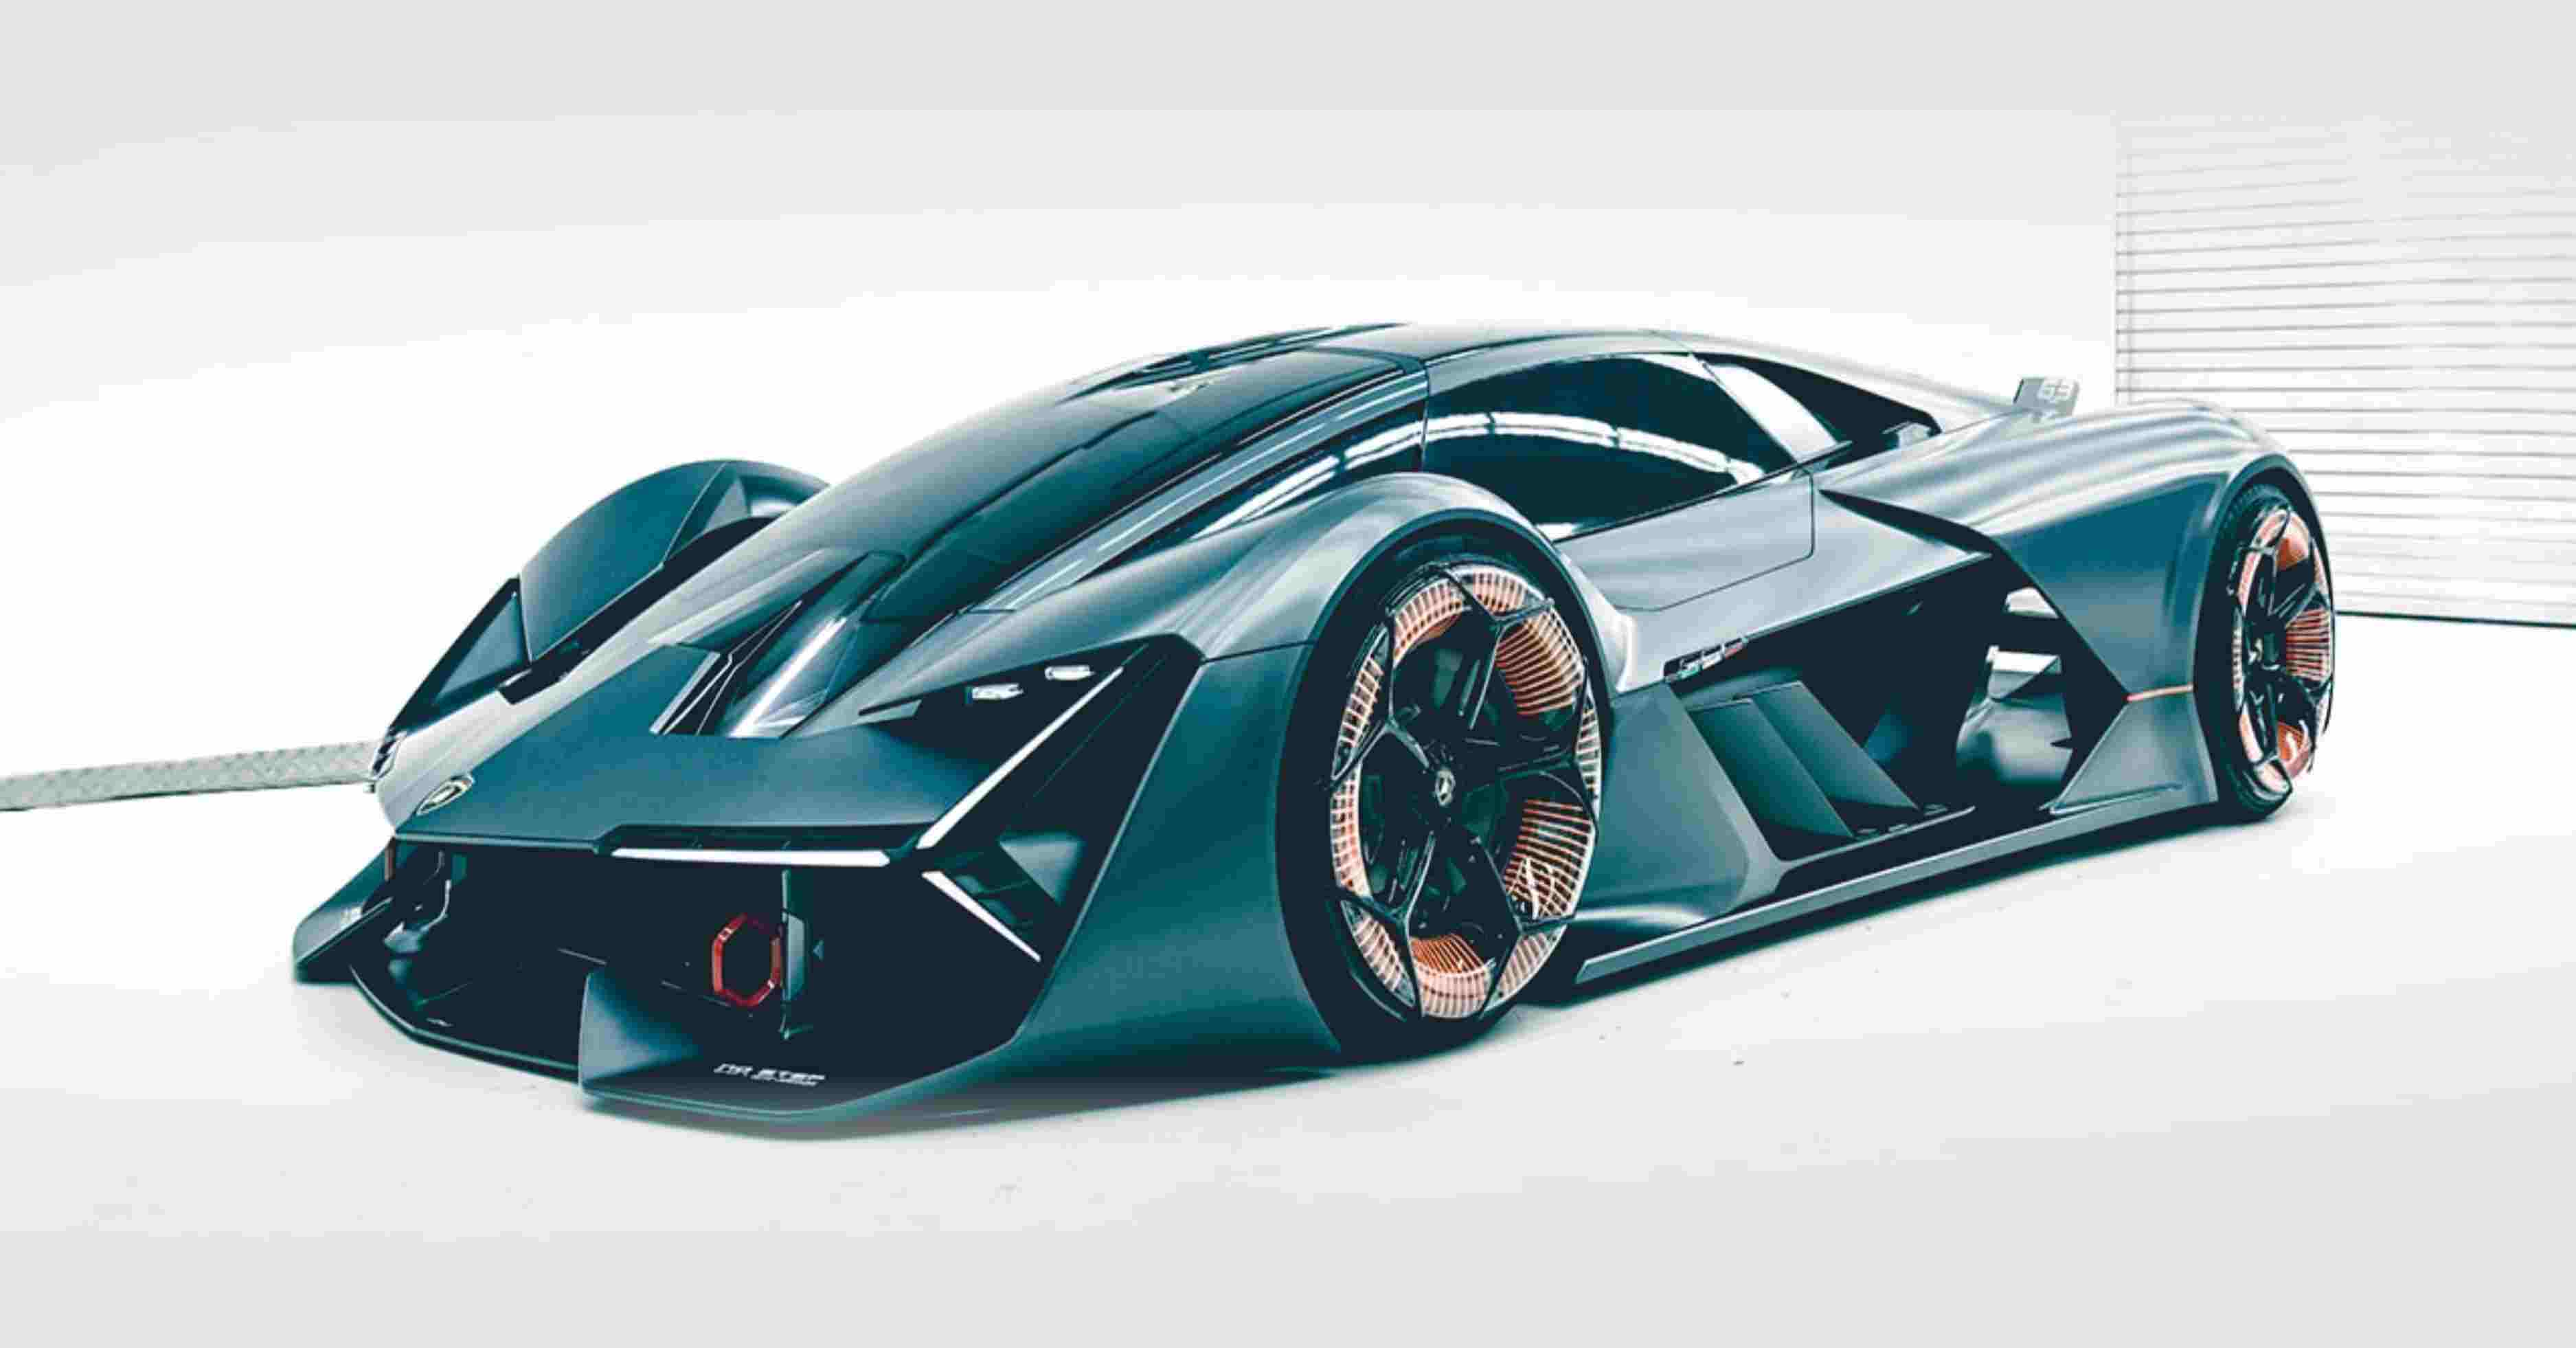 Lamborghini's Futuristic Concept Electric Supercar that Stores Energy